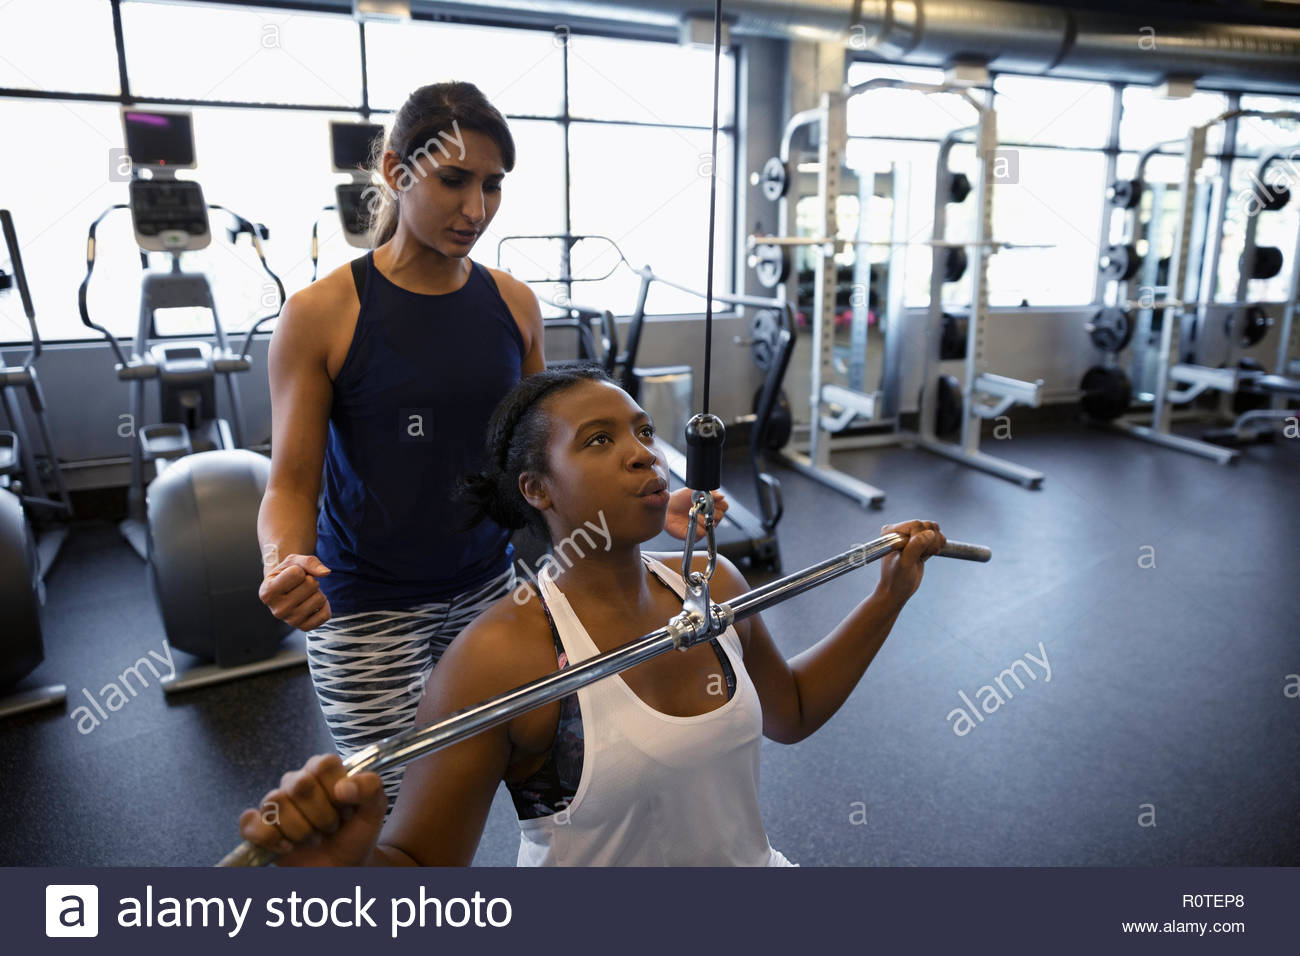 Personal trainer helping woman using exercise equipment in gym - Stock Image